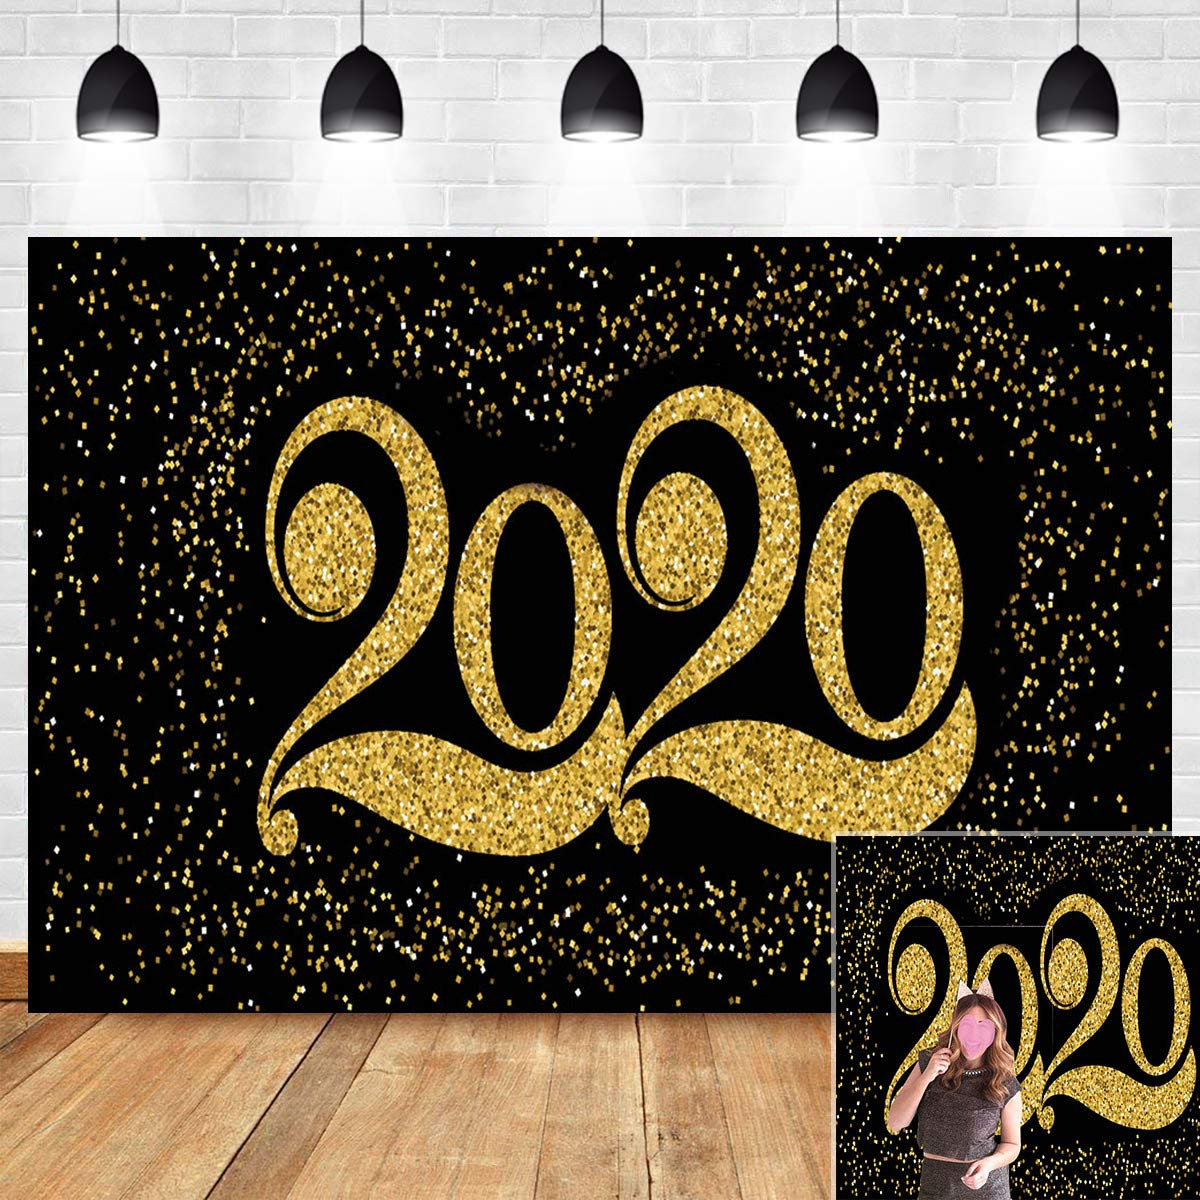 Gold Black Foil Swirls with Bonus Photo Paper Props NYE Theme Party Supplies Decoration Kit PartyHacks 55ct New Years Eve Party Hanging Decorations 2020